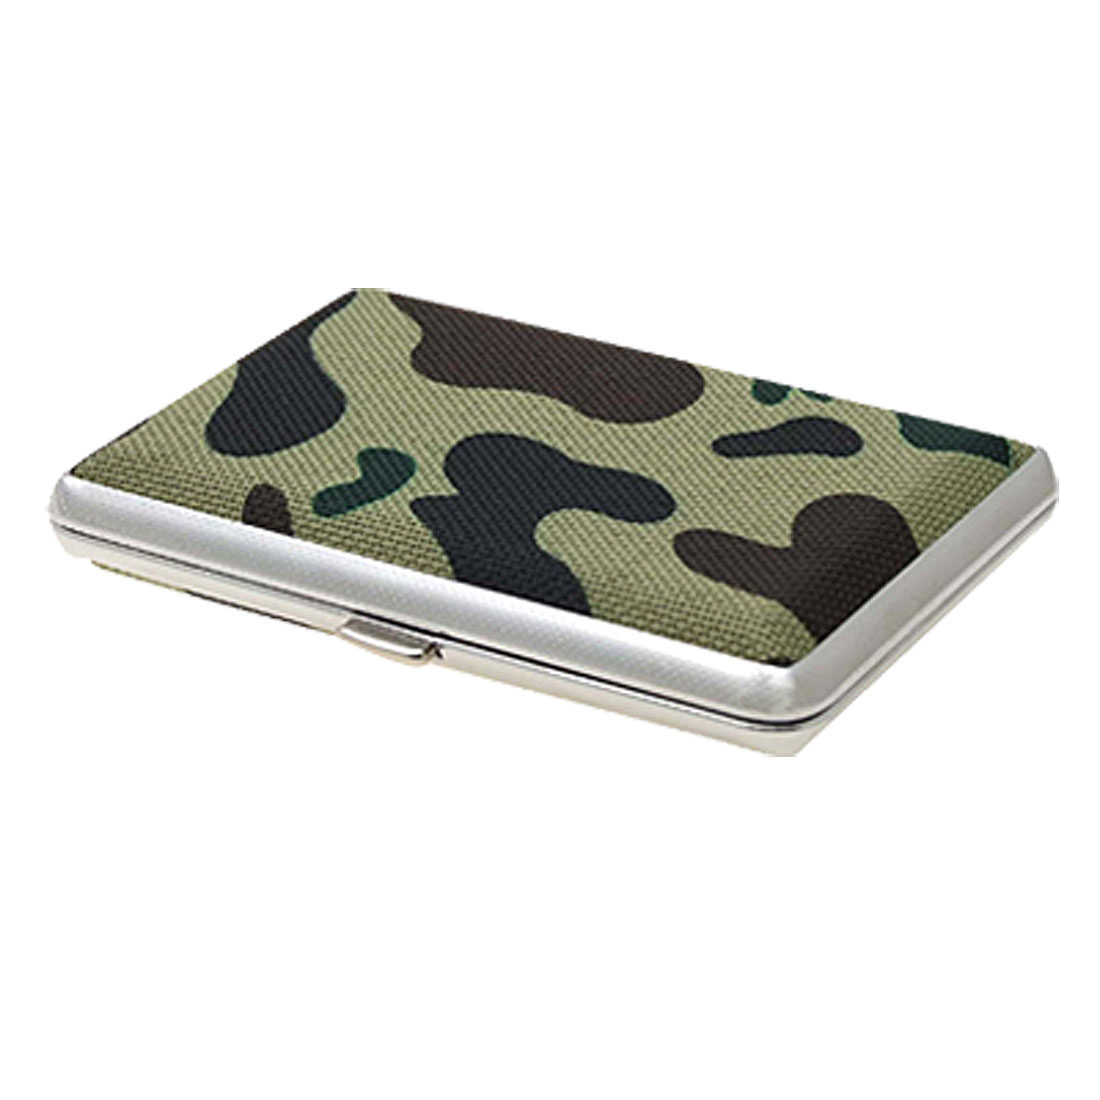 Chrome-Plated-Frame-Cigarettes-Camouflage-Box-Case-Holder